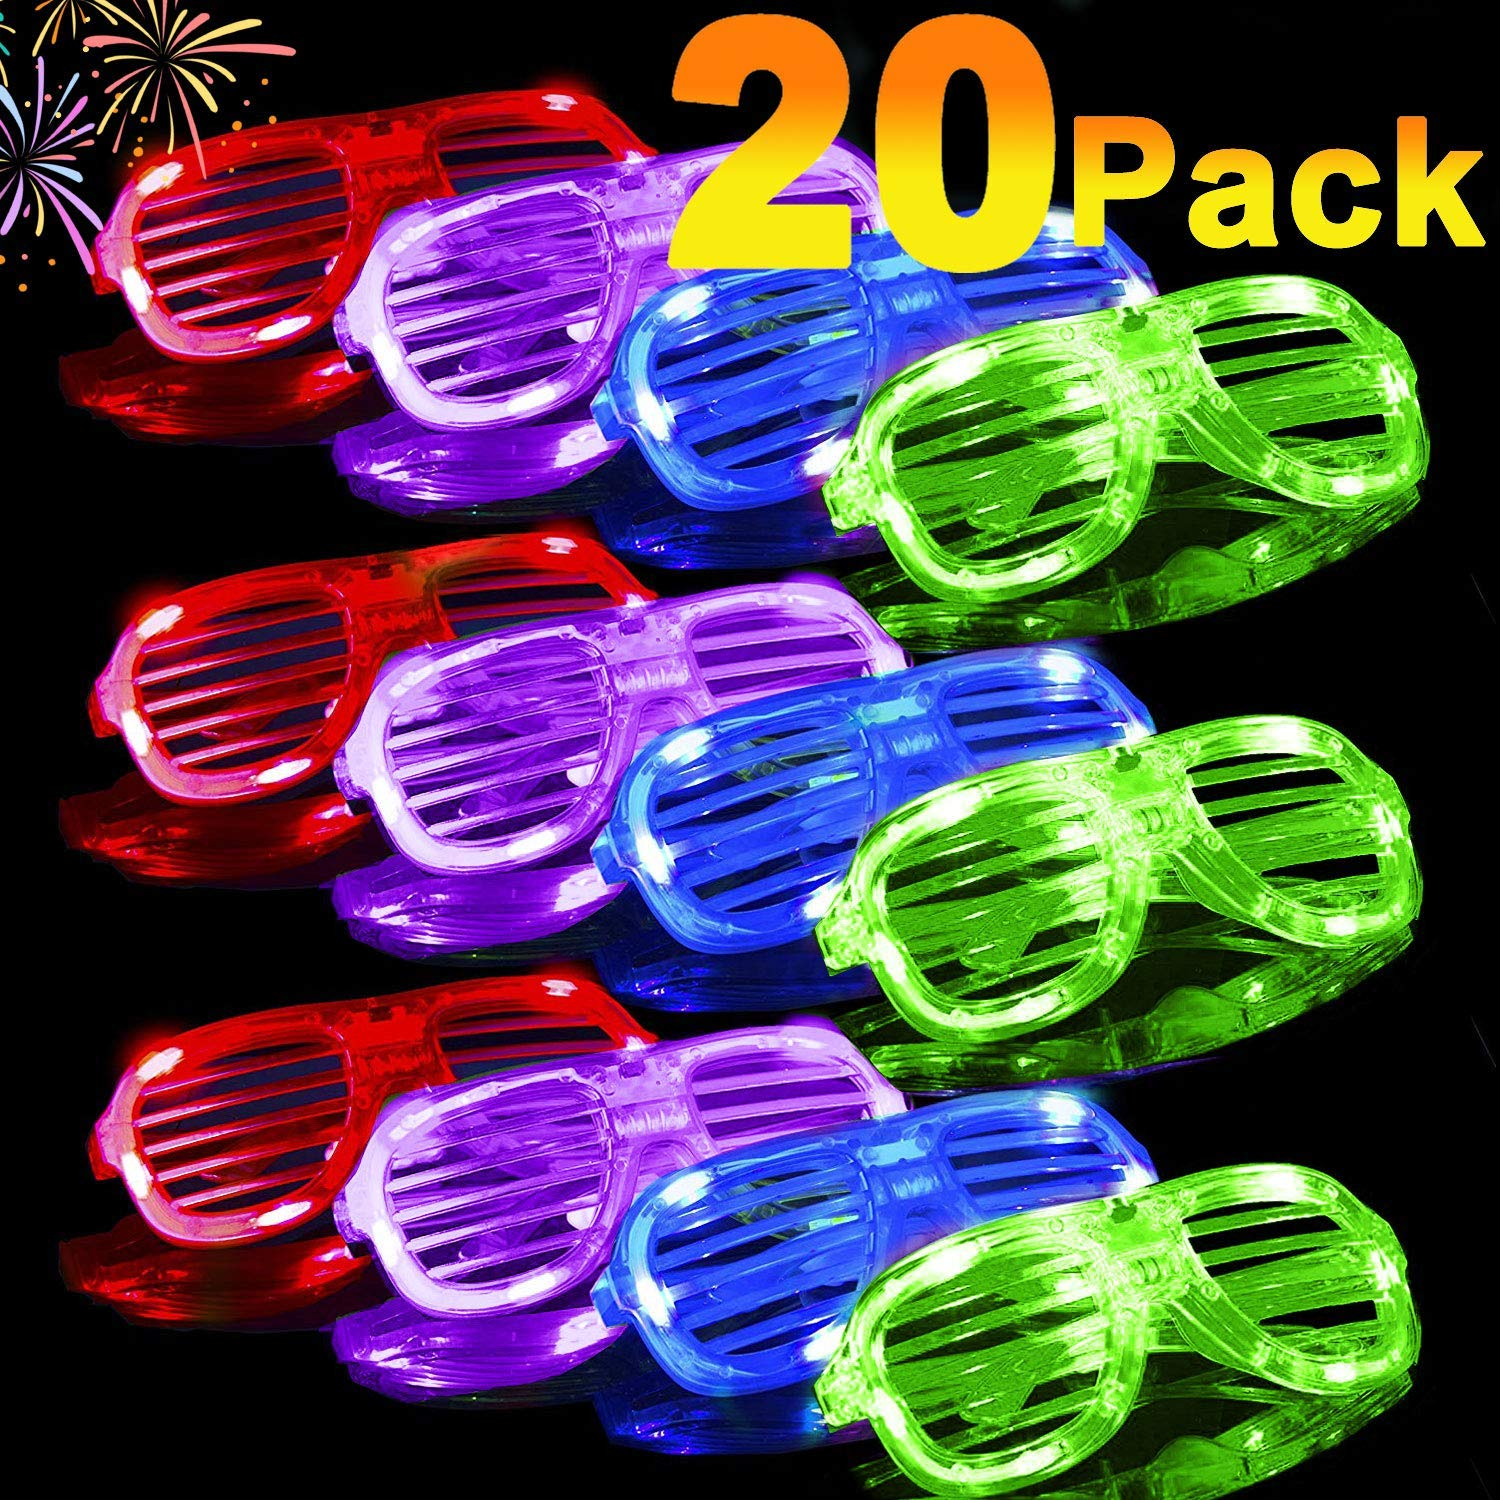 20 Pack Light Up Glasses 2020 Glow in The Dark Party Shades 5 Color Led Party Glasses Shutter Shades for Adults Kids LED Neon Sunglasses Neon Party Supplies Rave Night Games Party Favors by iGeeKid